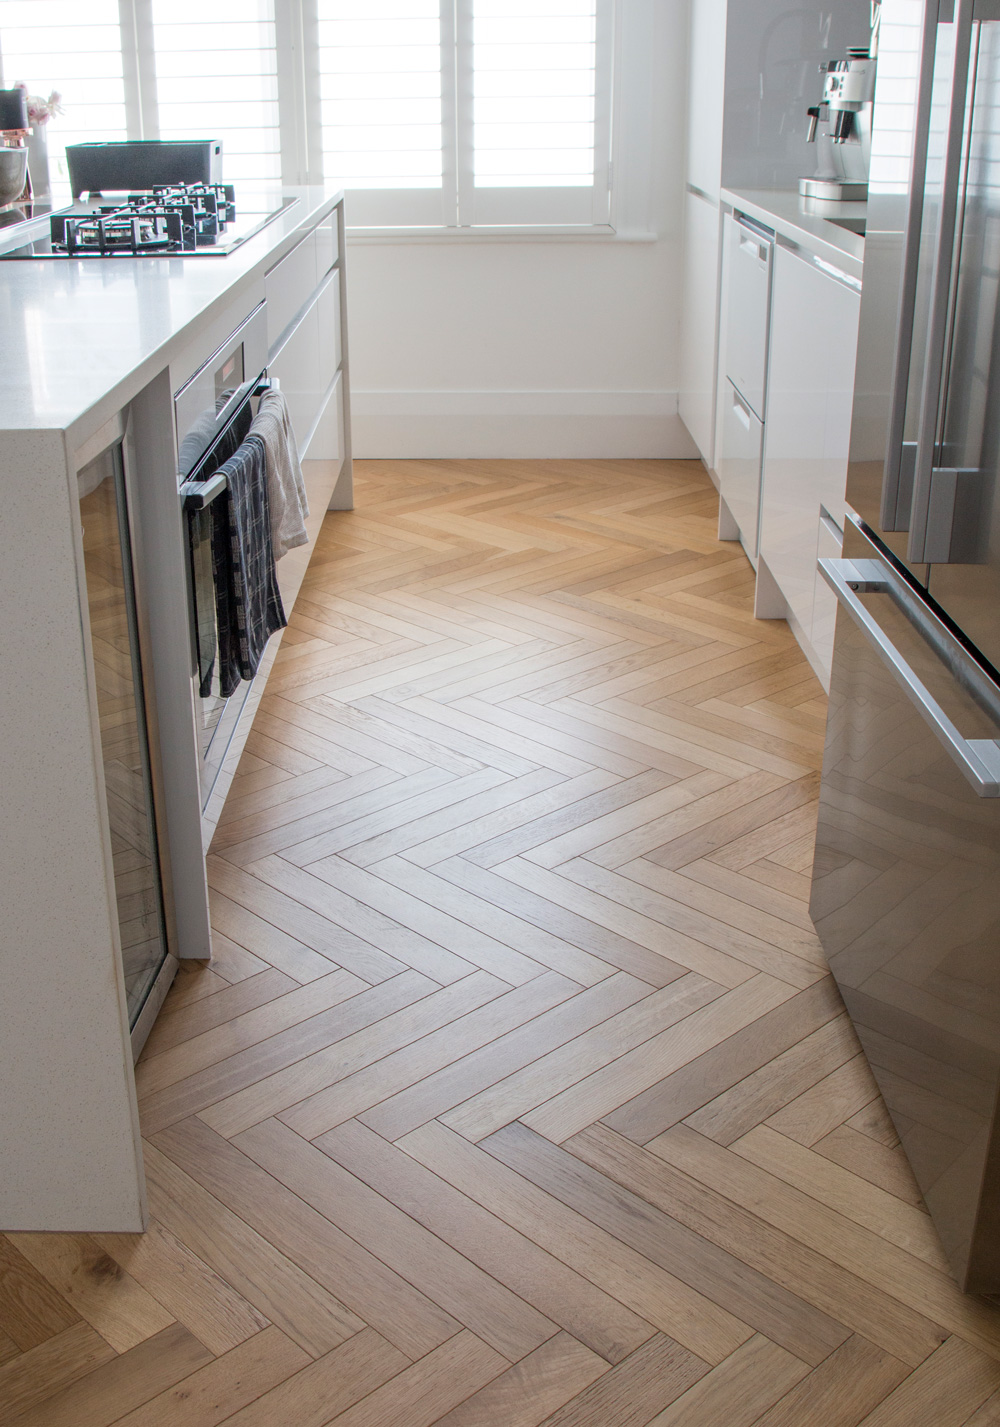 Herringbone Bone pattern Kitchen